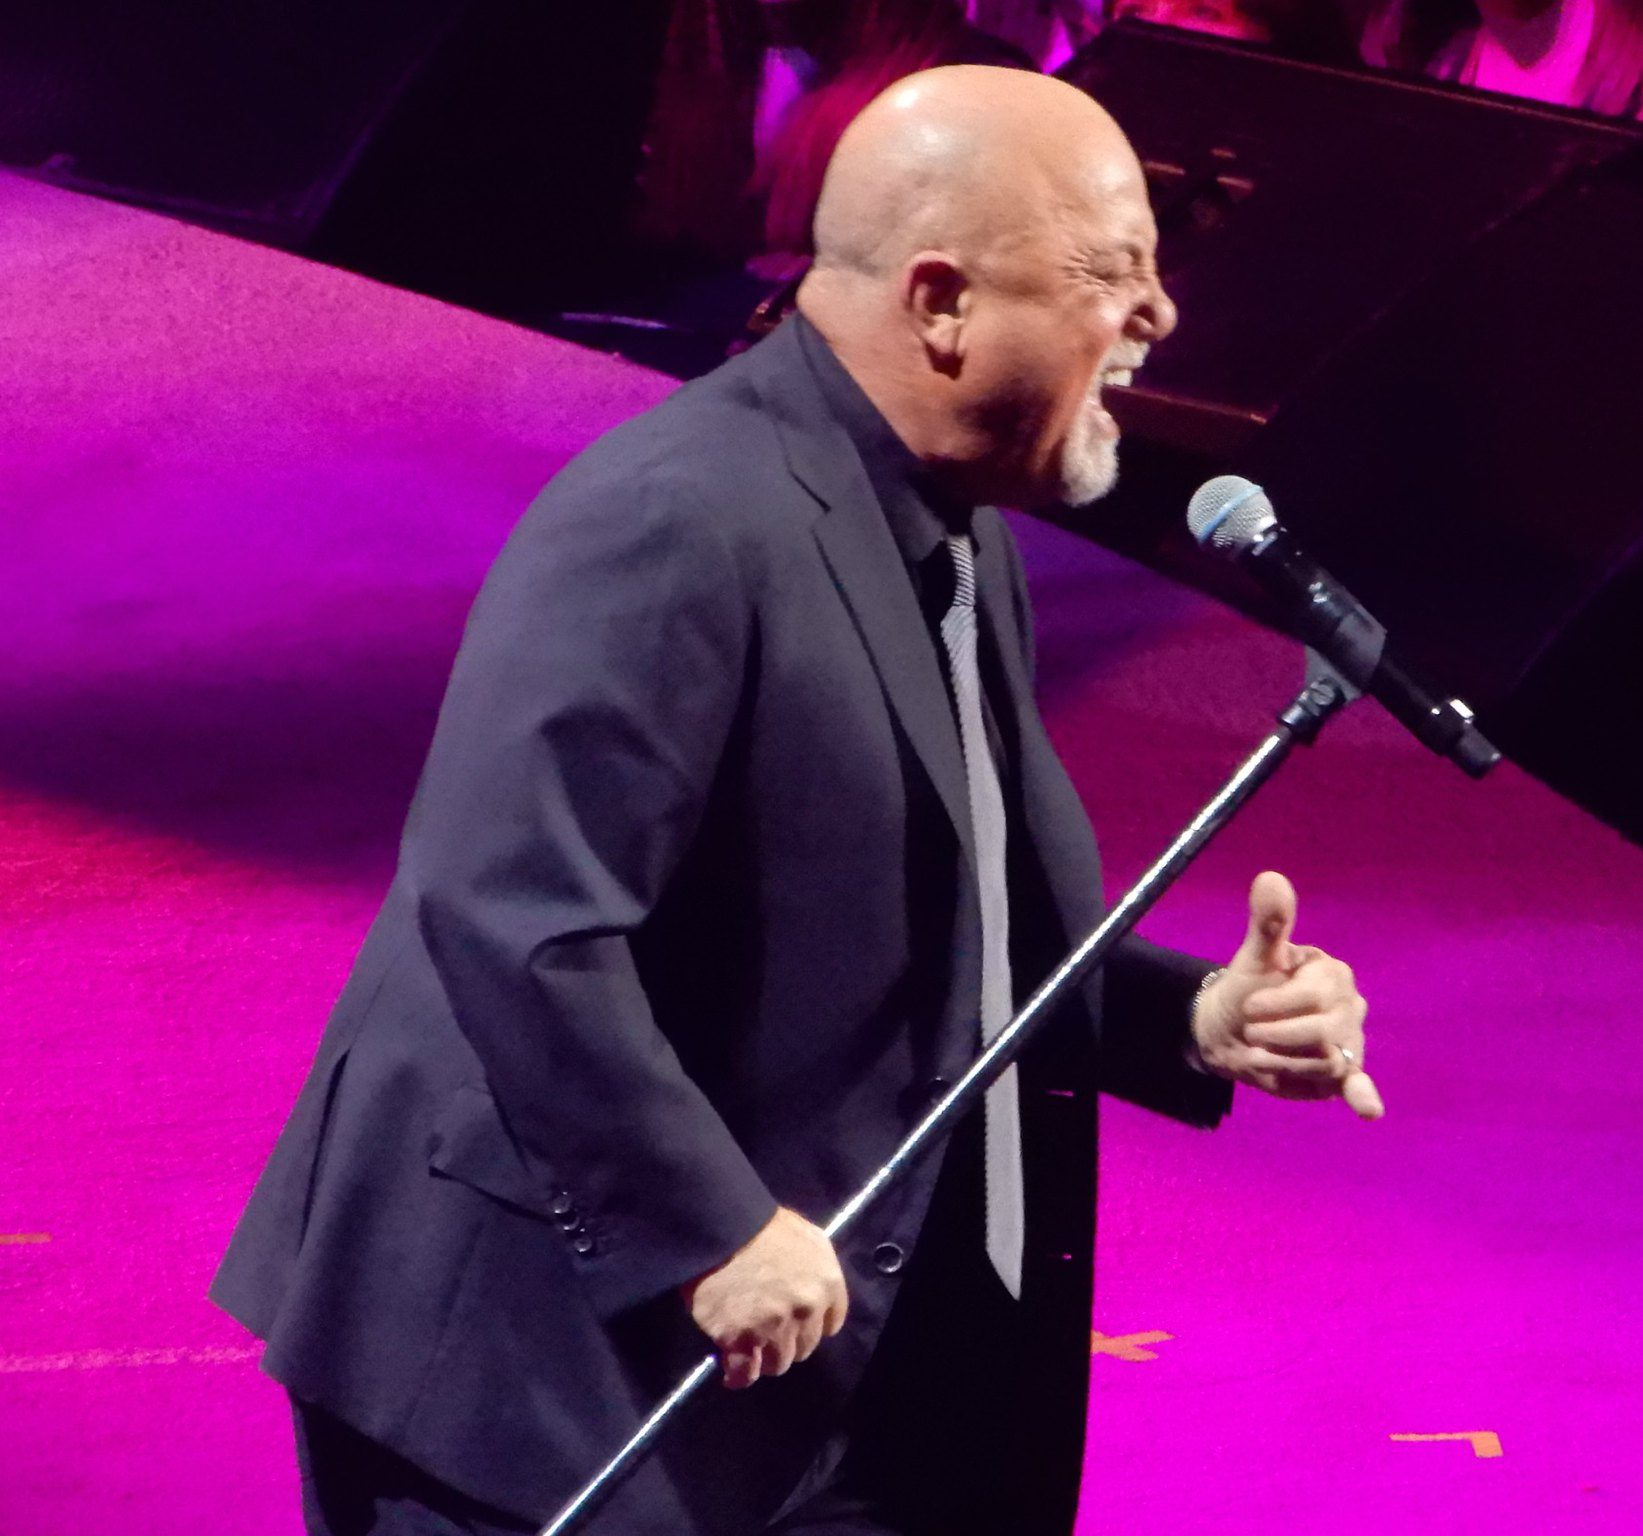 33720089032 96b866eddc k e1621426606402 20 Things You Probably Didn't Know About Billy Joel